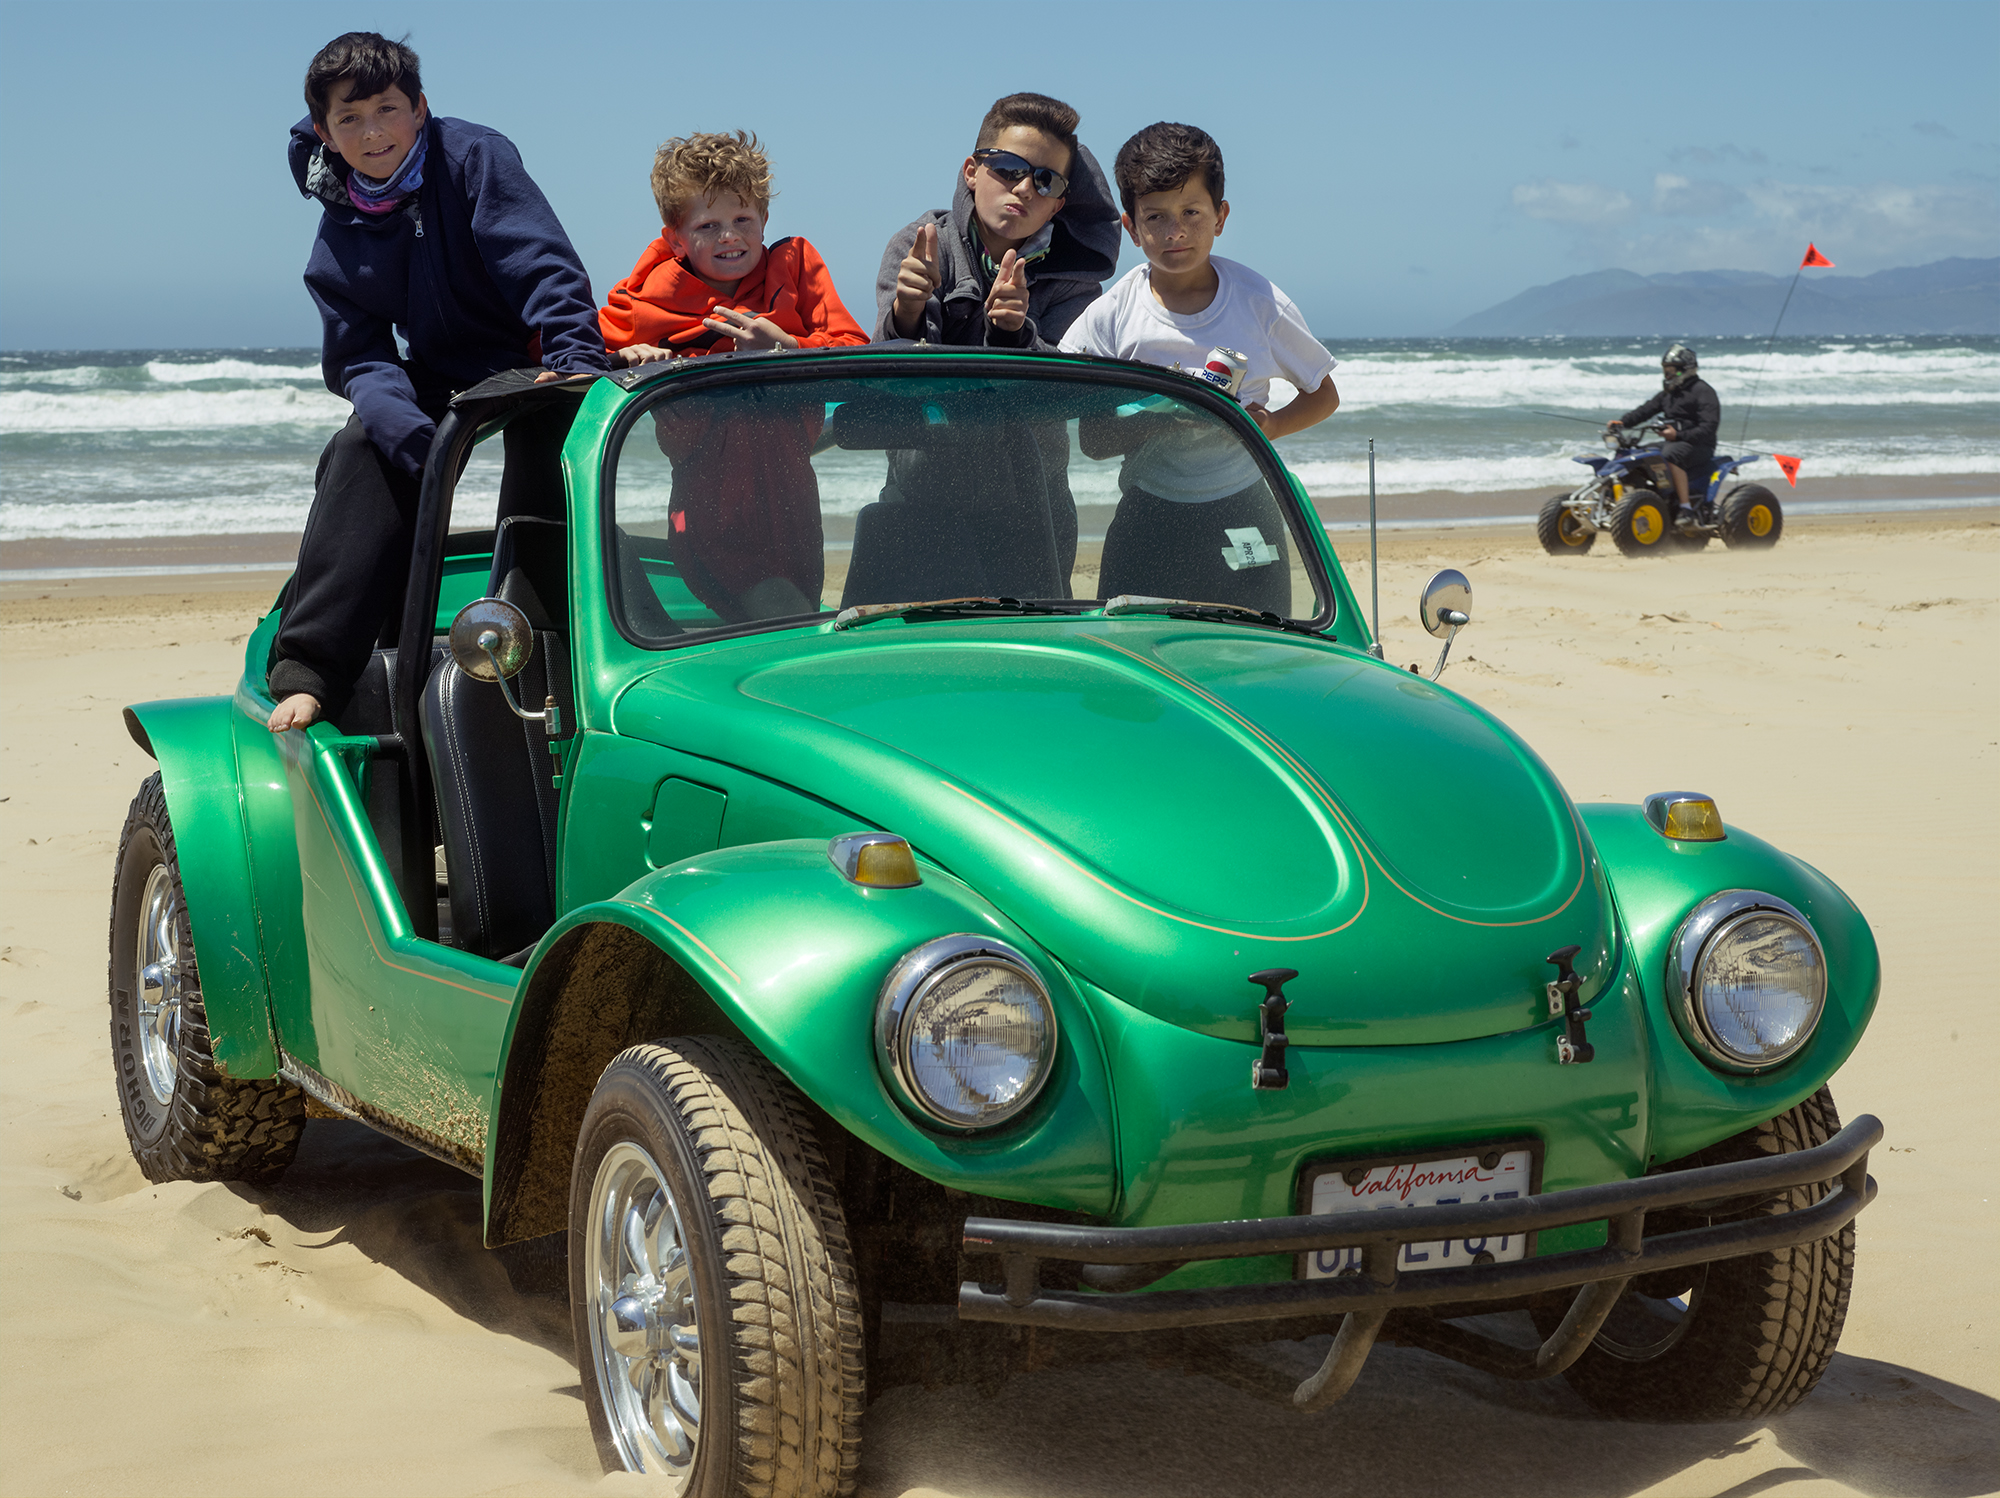 "Kids on Dune Buggy, 20"" x 15"", Archival Pigment Print, 2018"